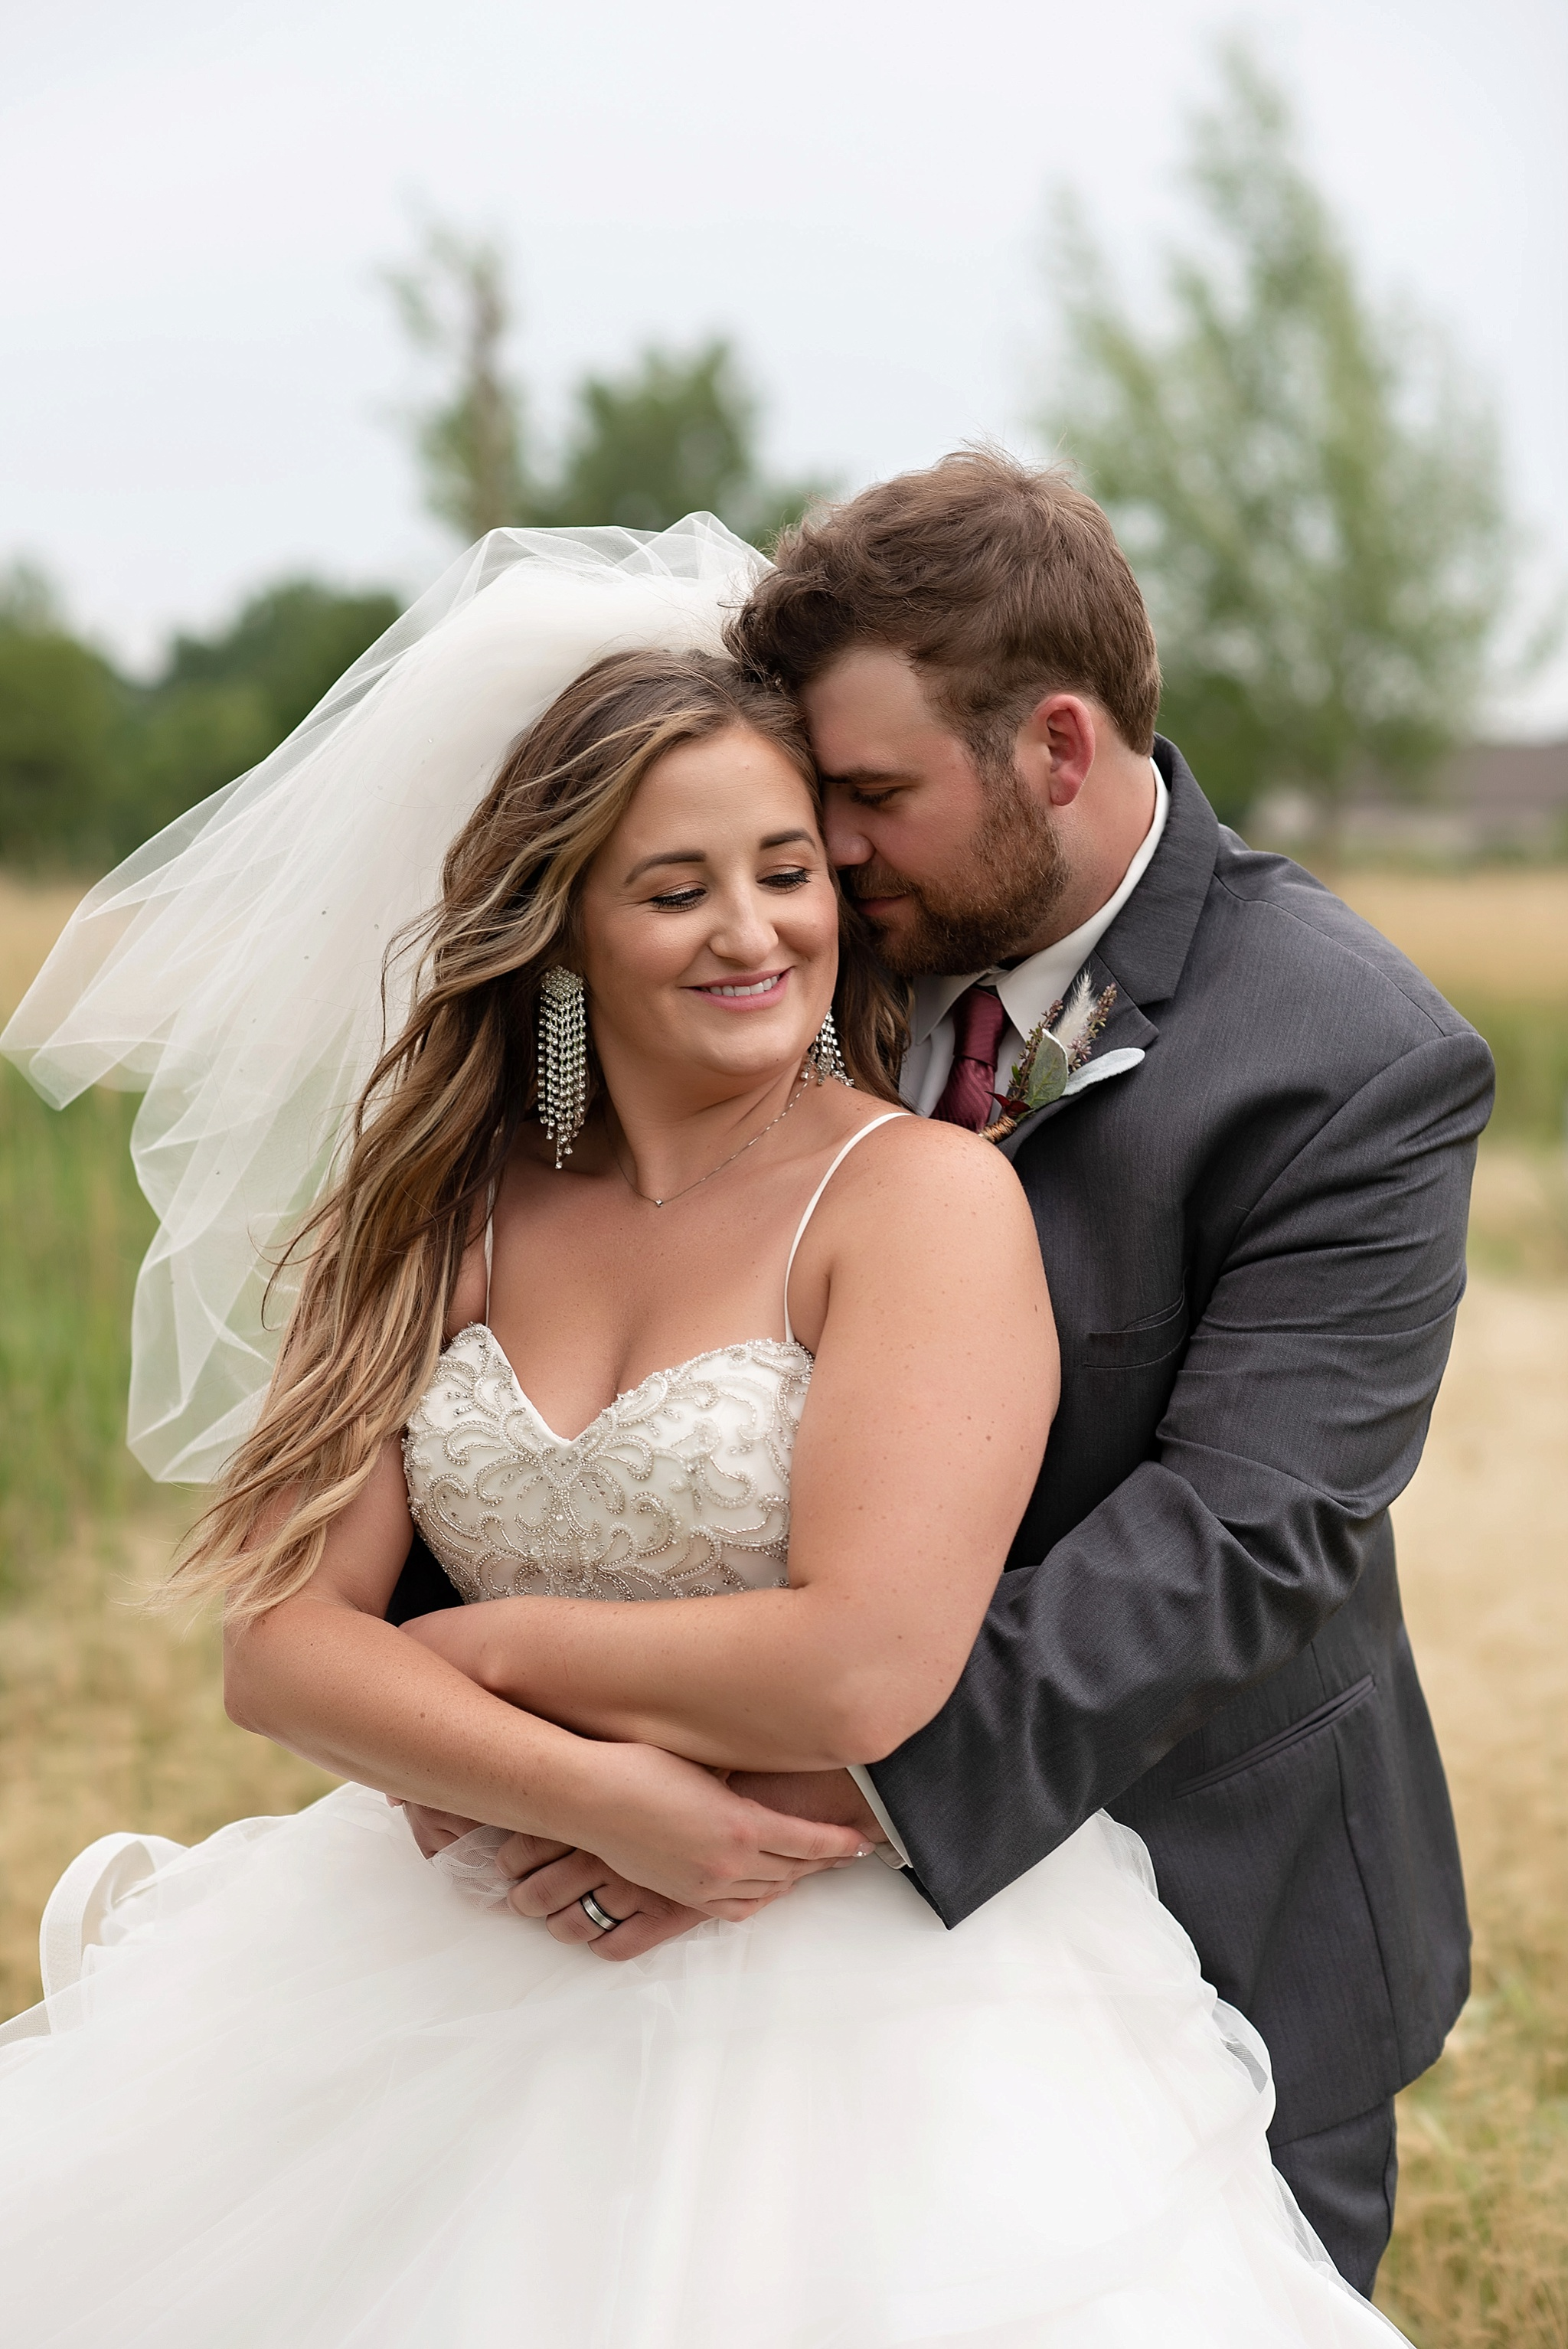 wedding portraits kate jones studios sioux falls south dakota wedding photographer